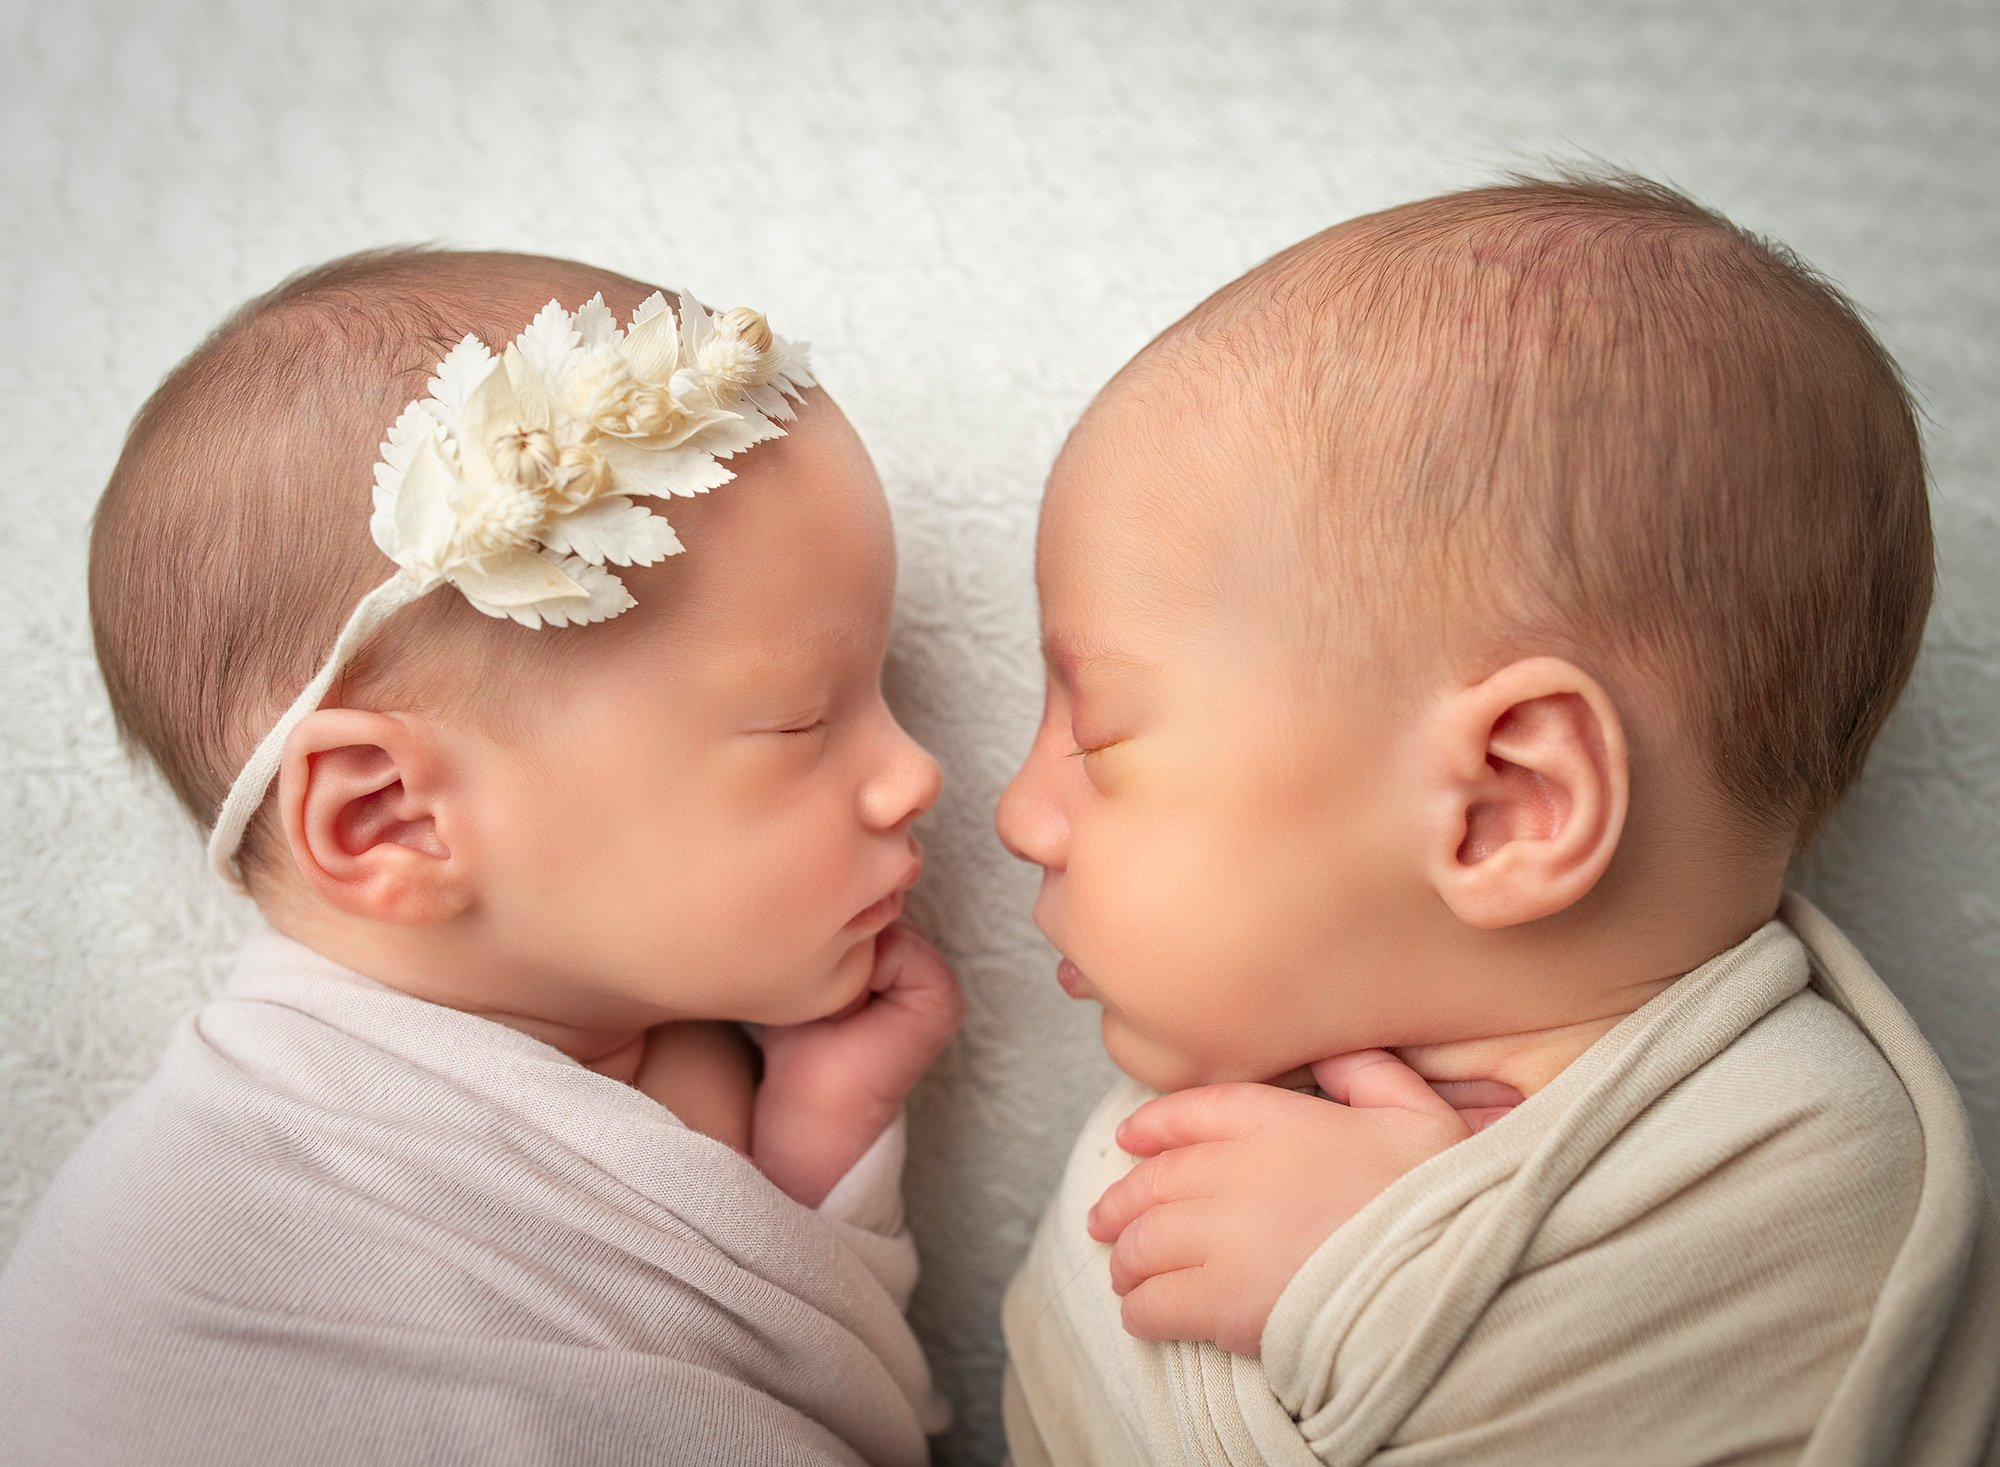 newborn twin girl and boy sound asleep facing each other swaddled in wraps